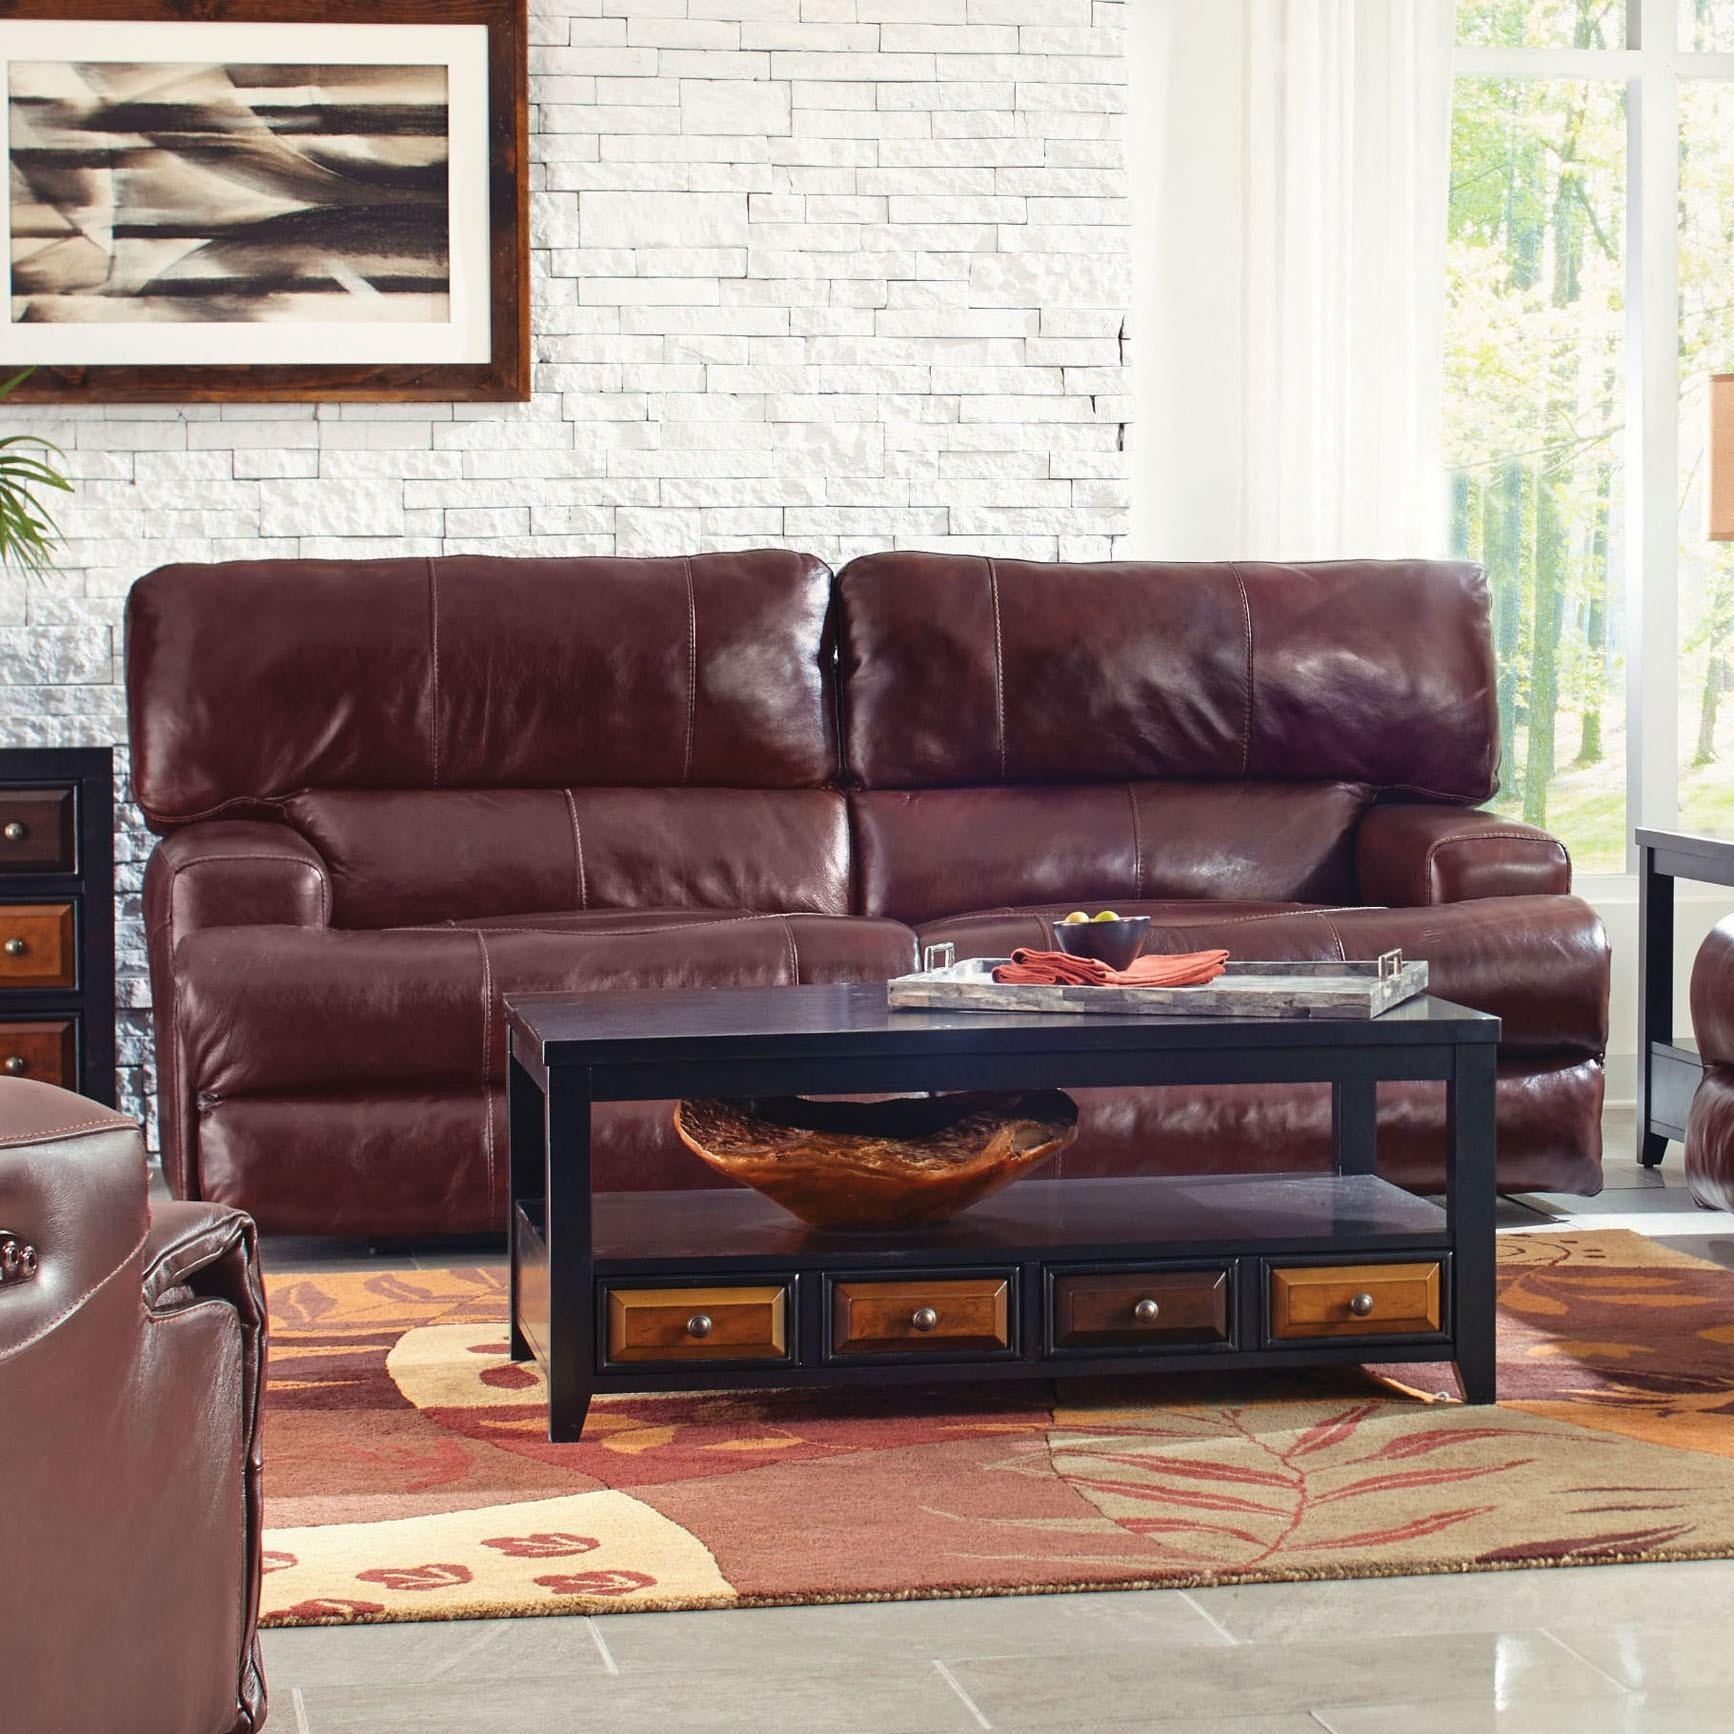 Catnapper Wembley Leather Lay Flat Reclining Sofa In Walnut 4581 With Regard To Catnapper Recliner Sofas (Image 11 of 20)